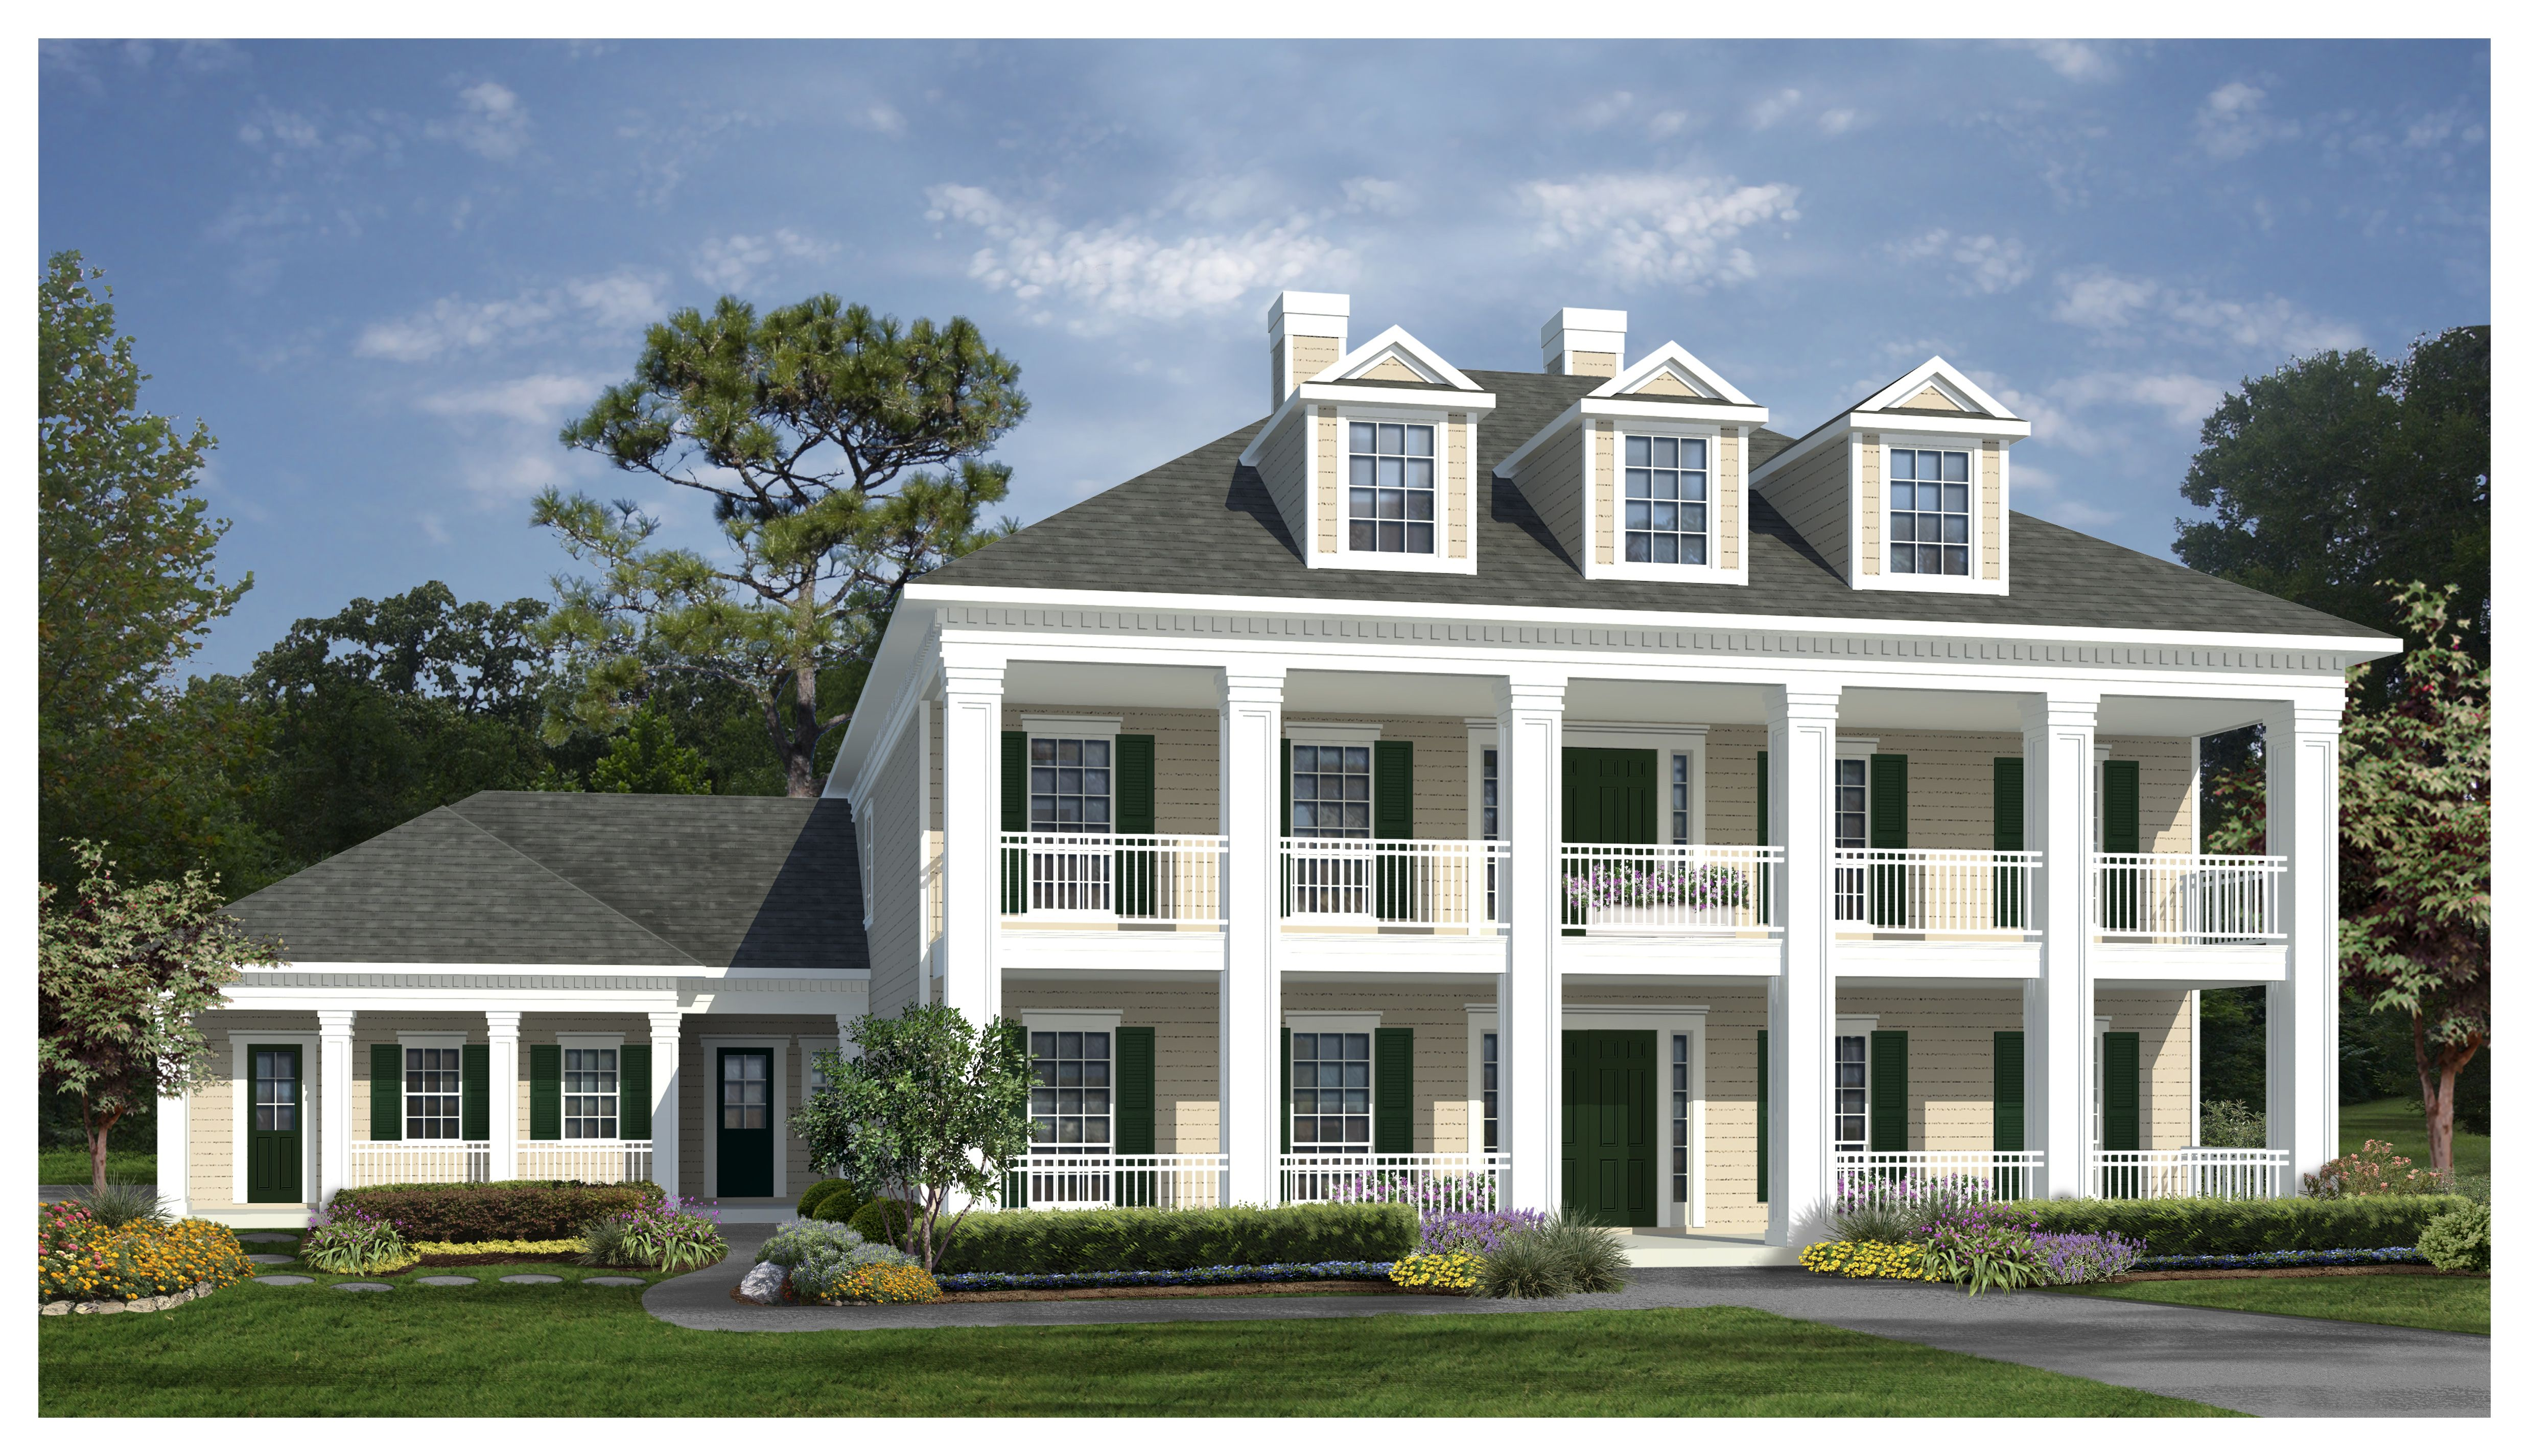 Sq ft house plan 4 bed 3 5 bath 2 5 story the for One story greek revival house plans